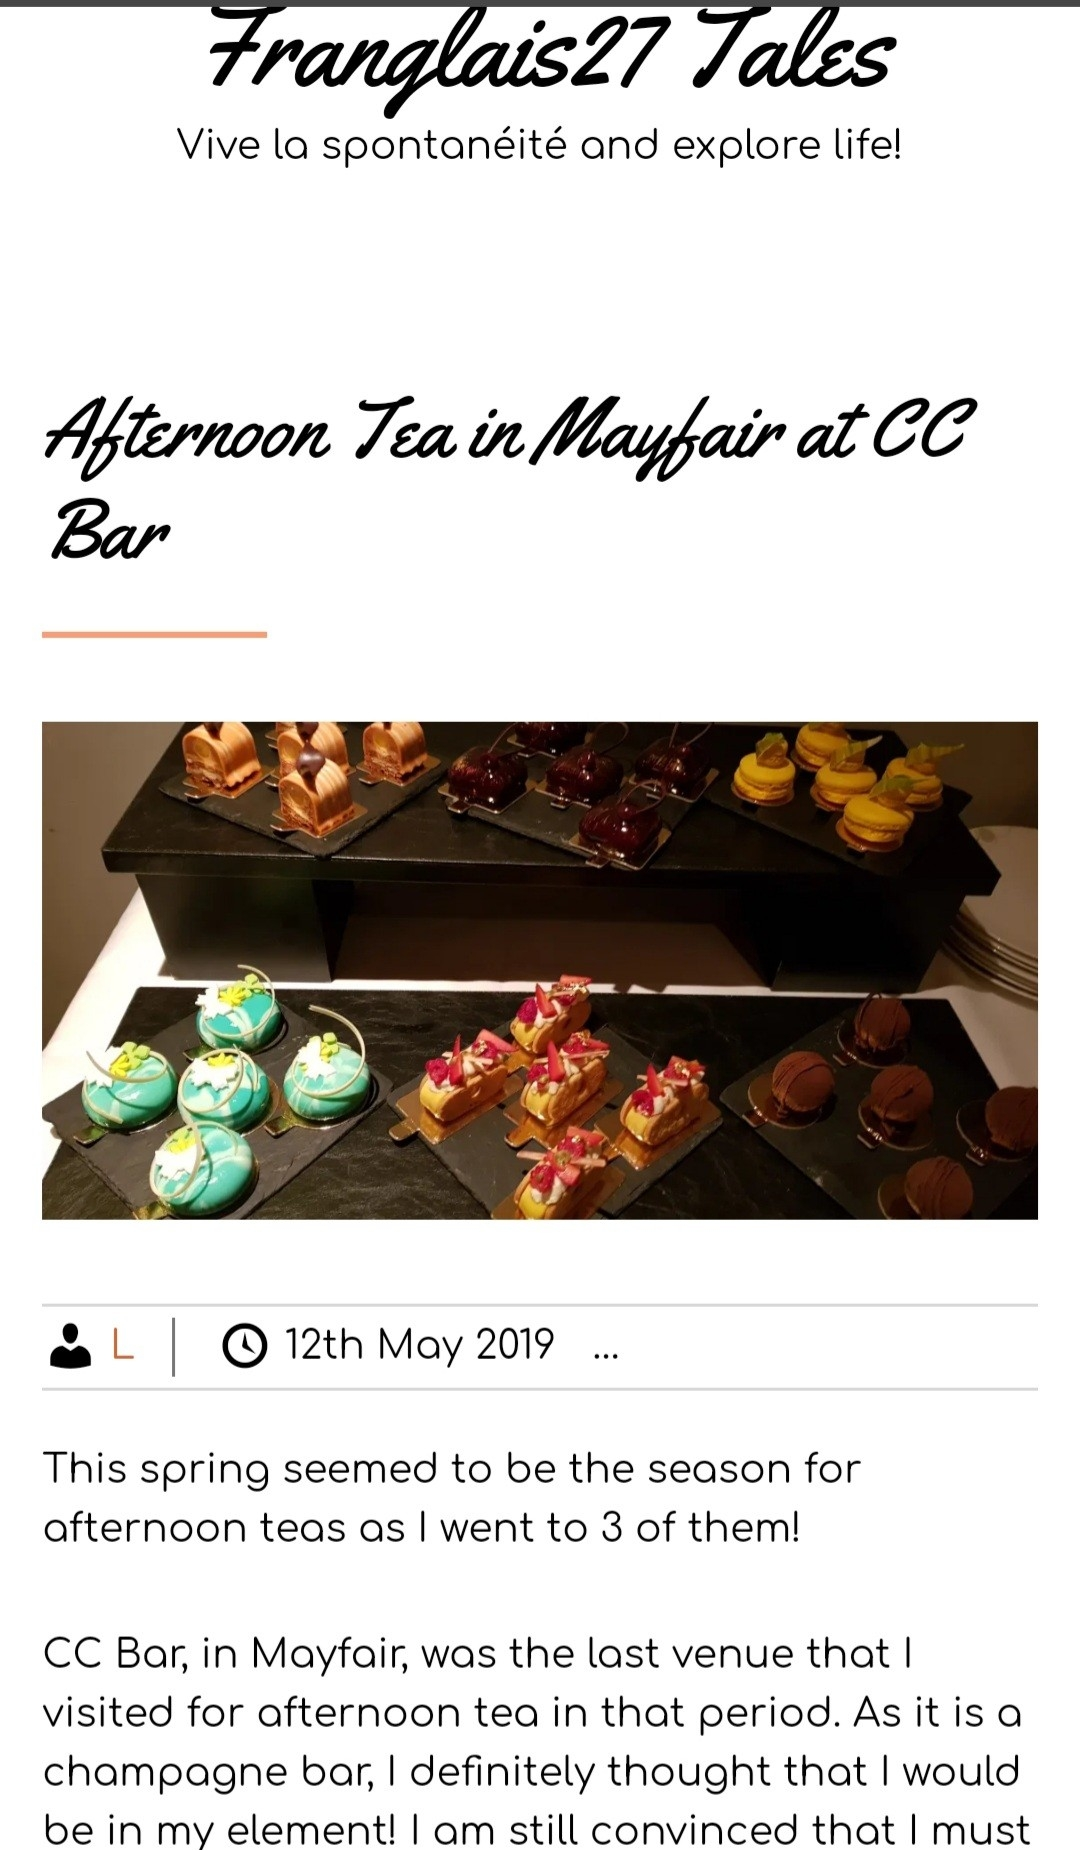 One of the afternoon tea published articles on Franglais27 Tales